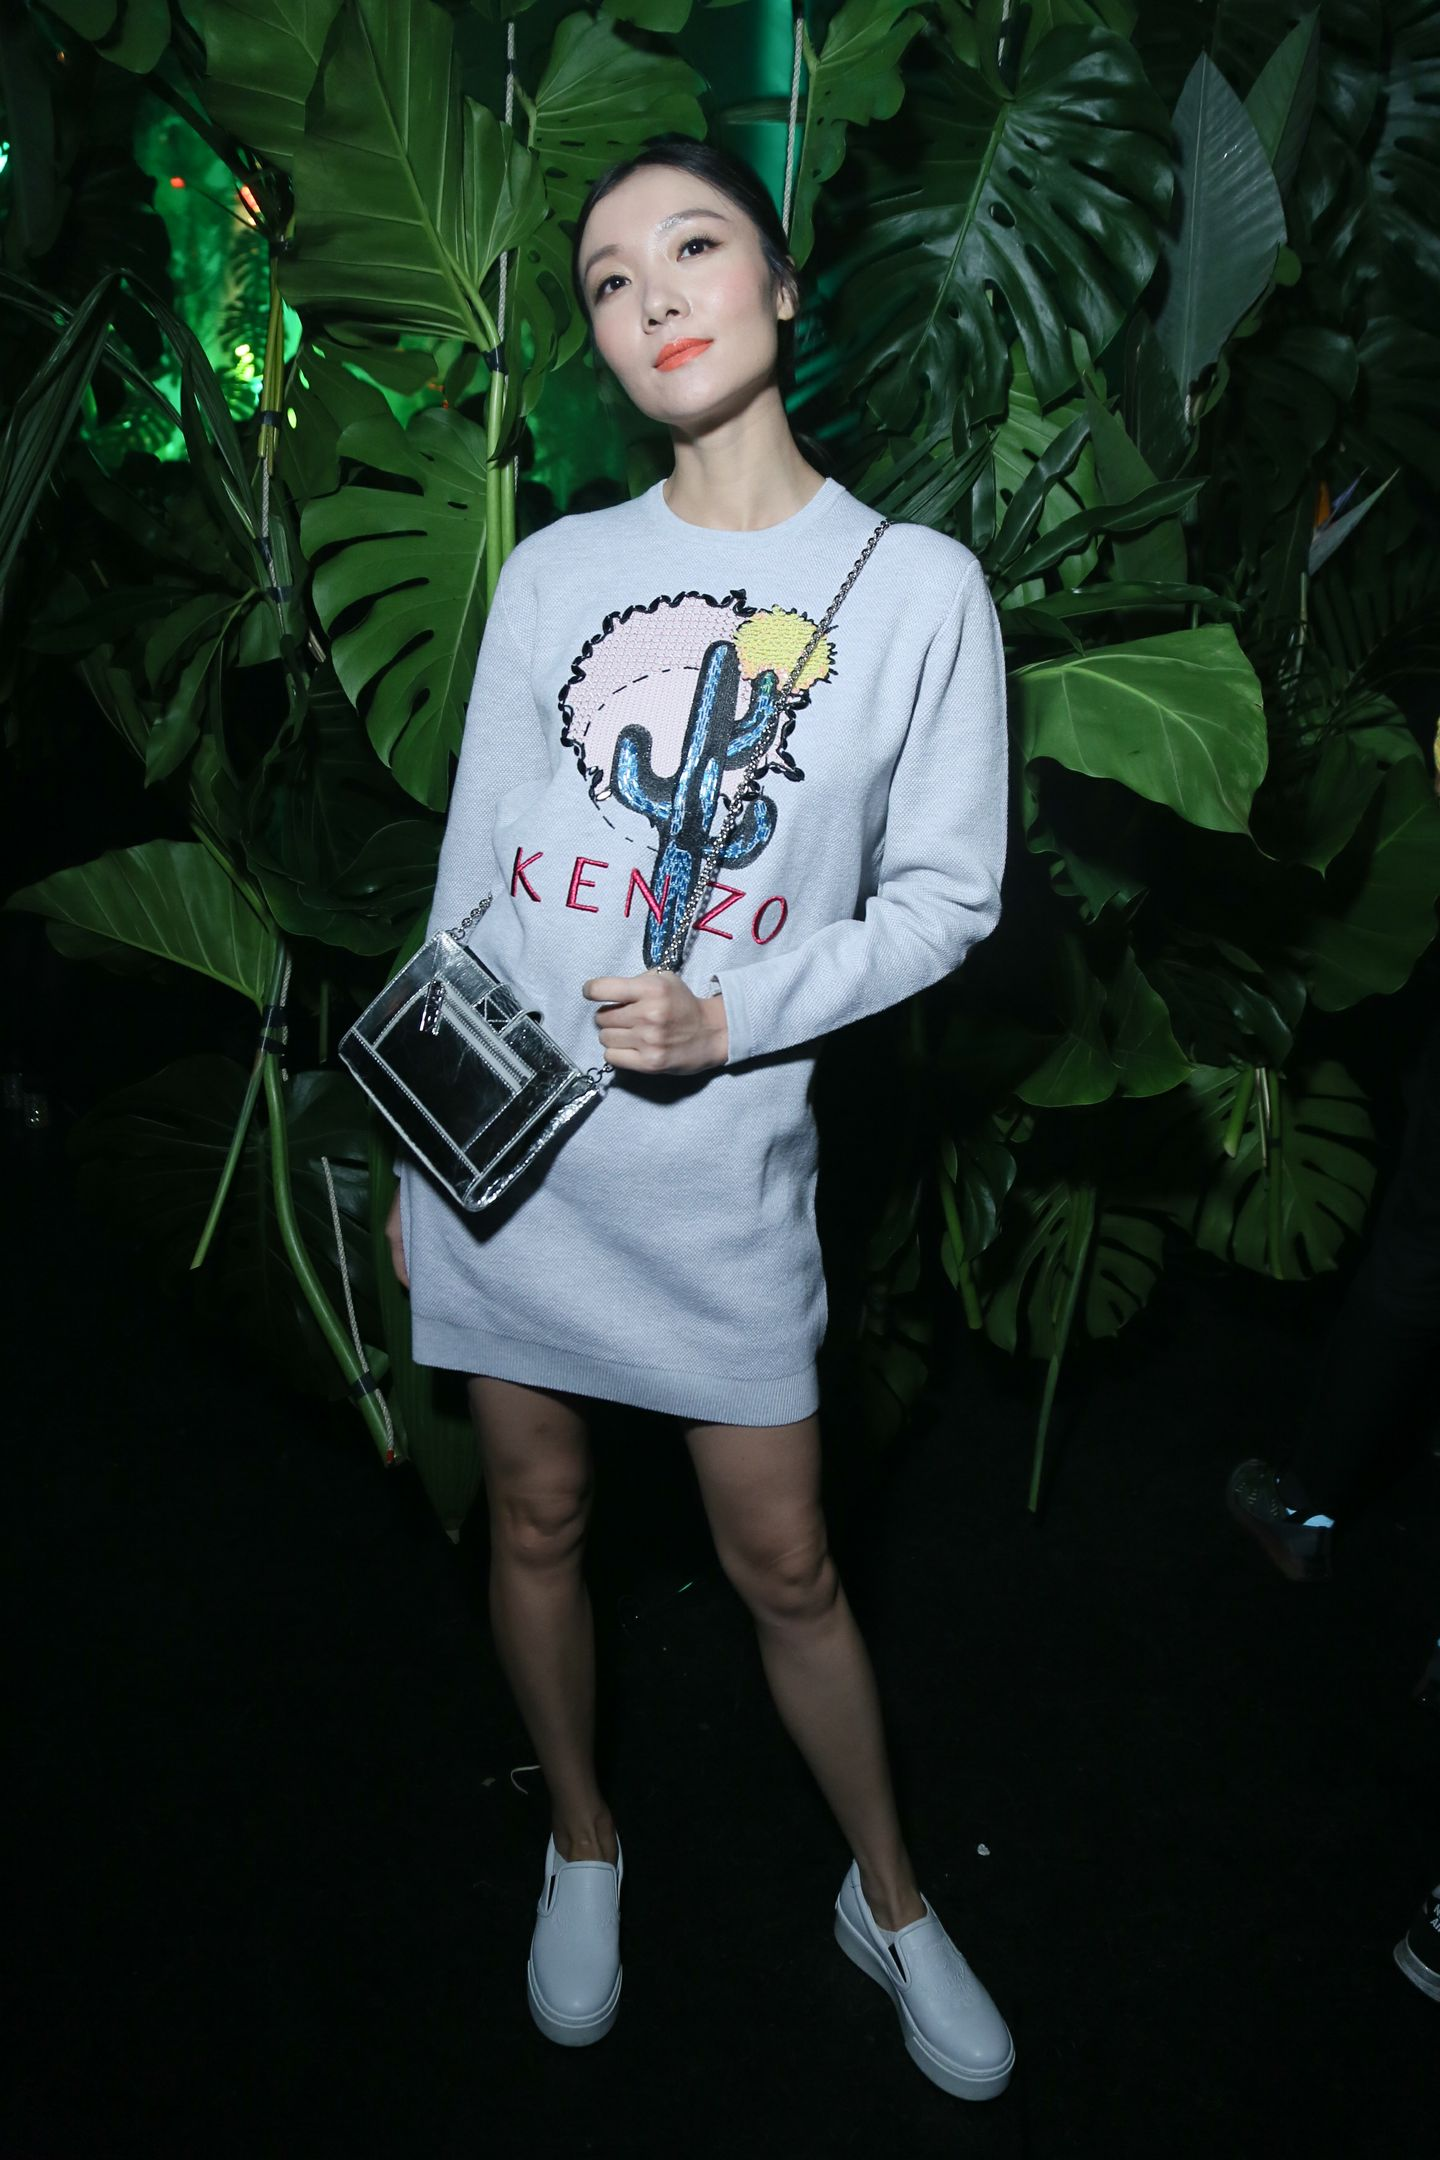 KENZO collection 2